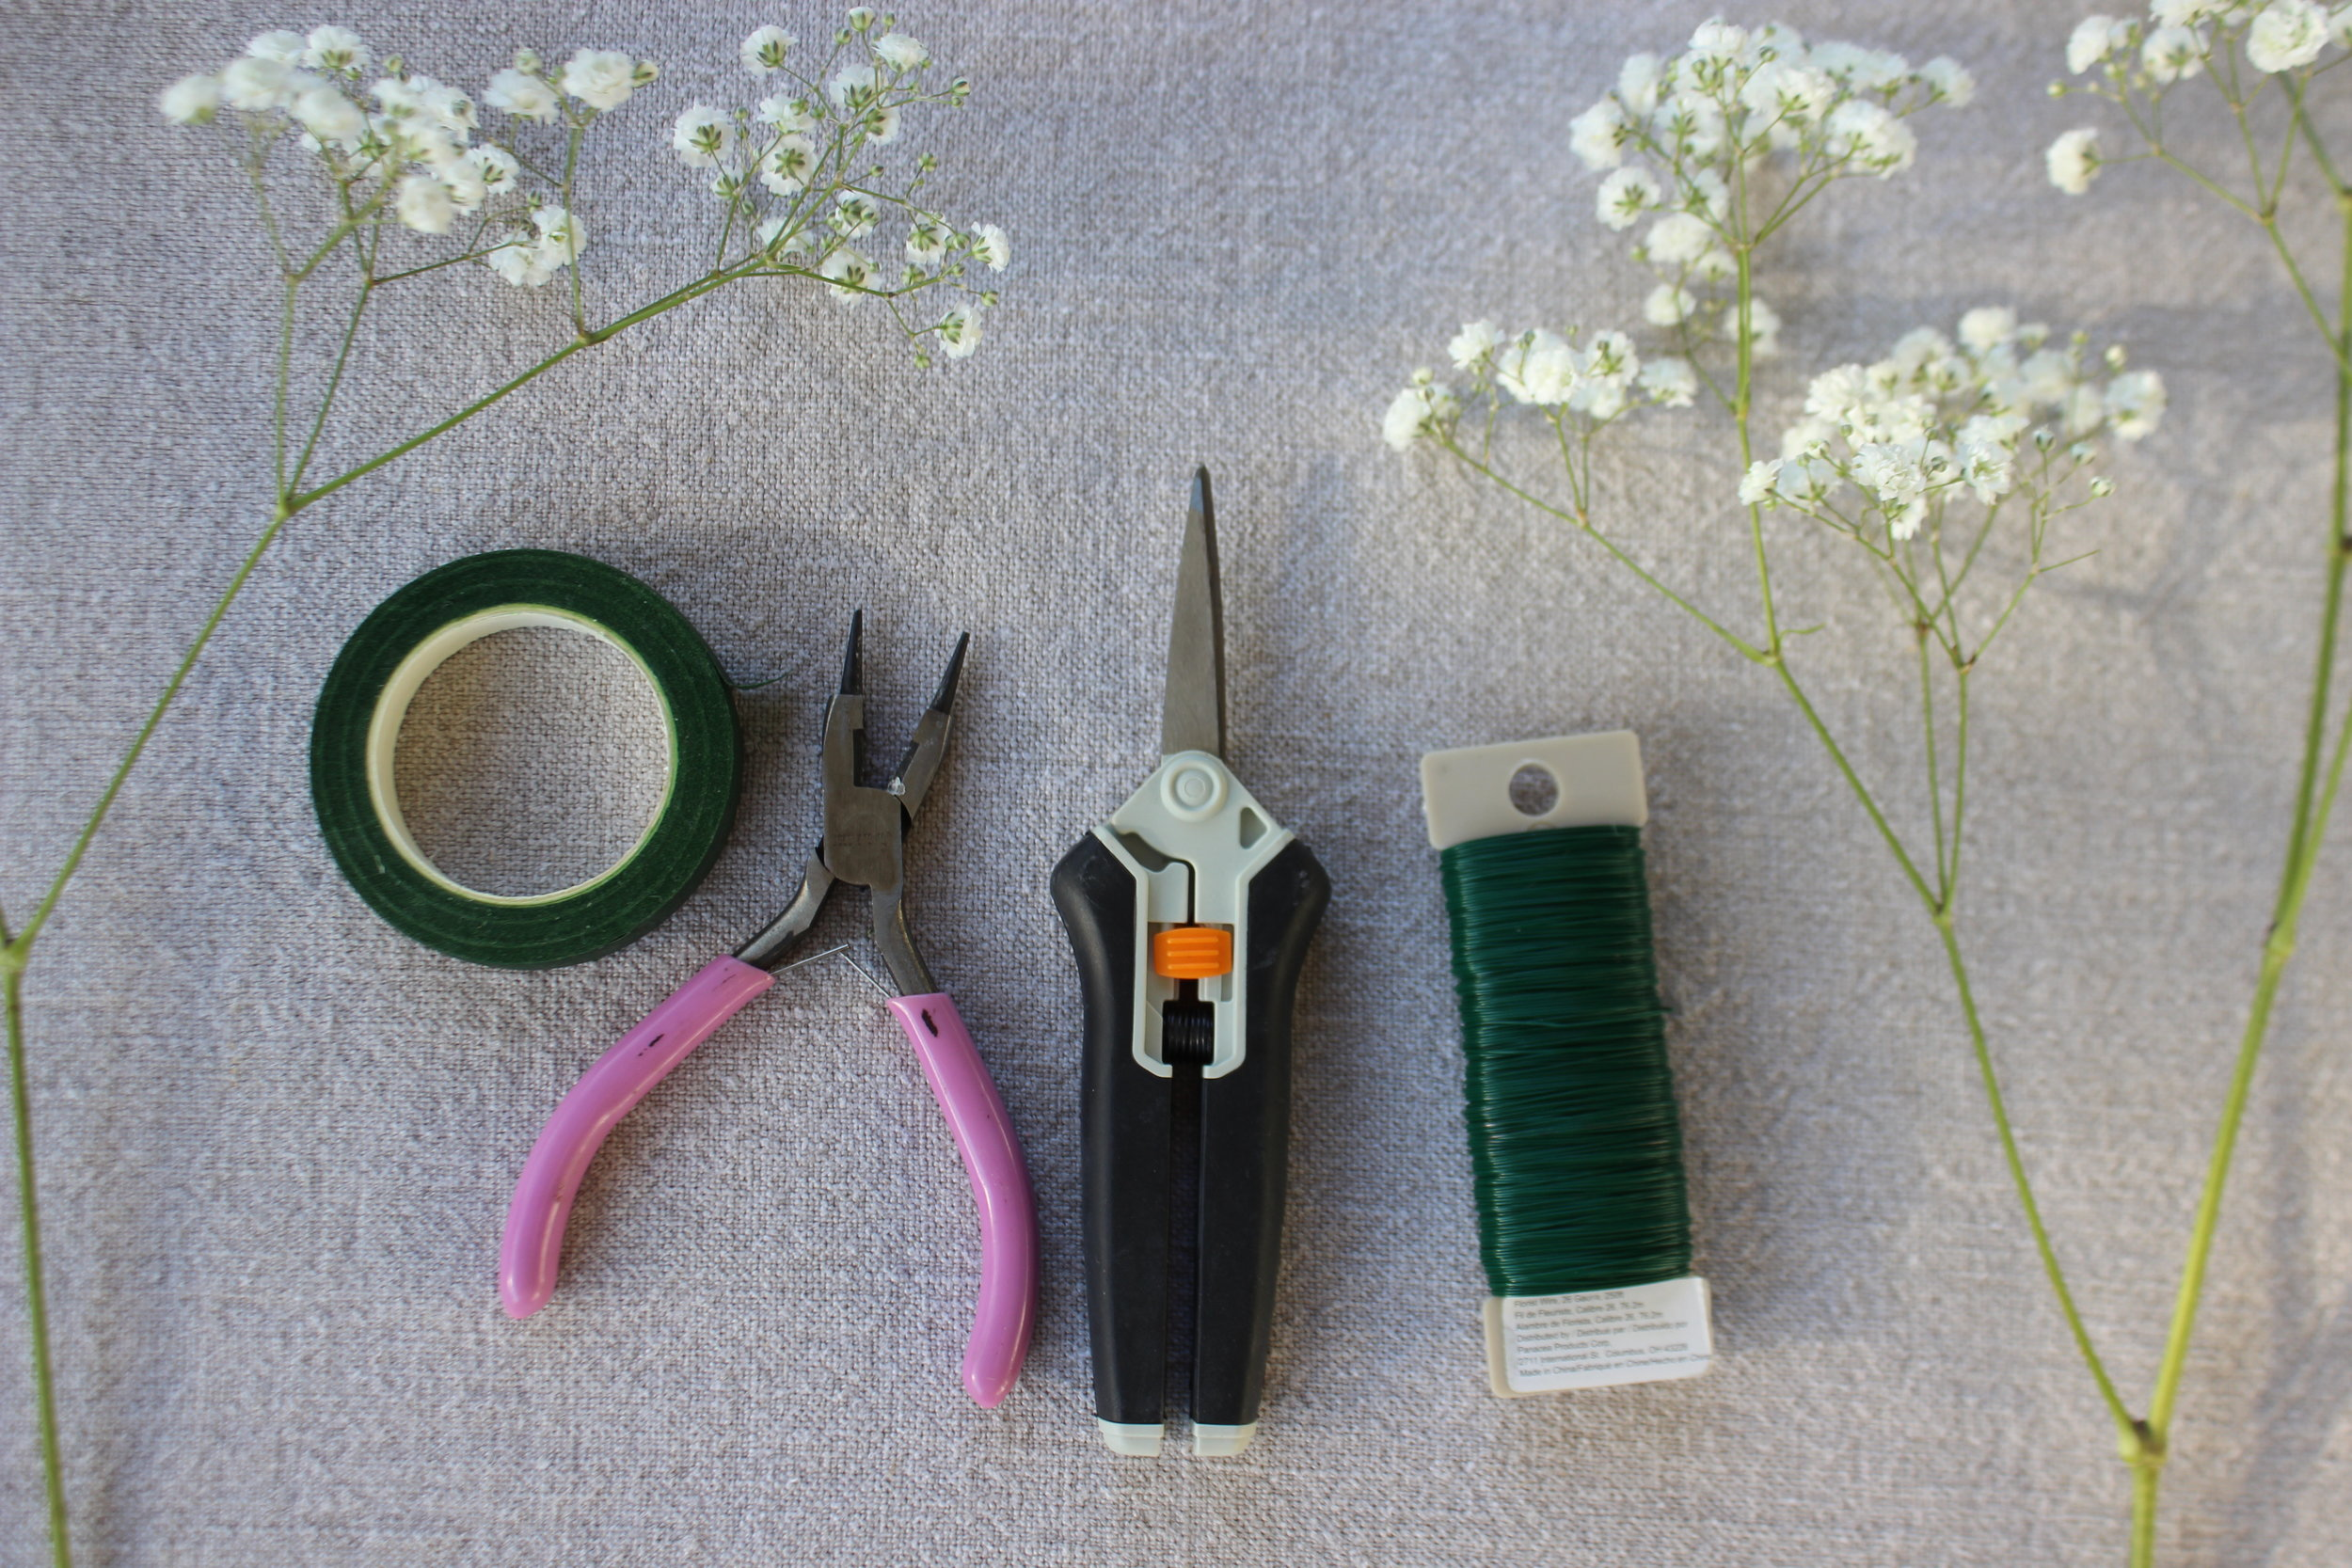 You'll need:   bunch of baby's breath     1/2 inch floral tape      floral wire     wire snips    floral snips